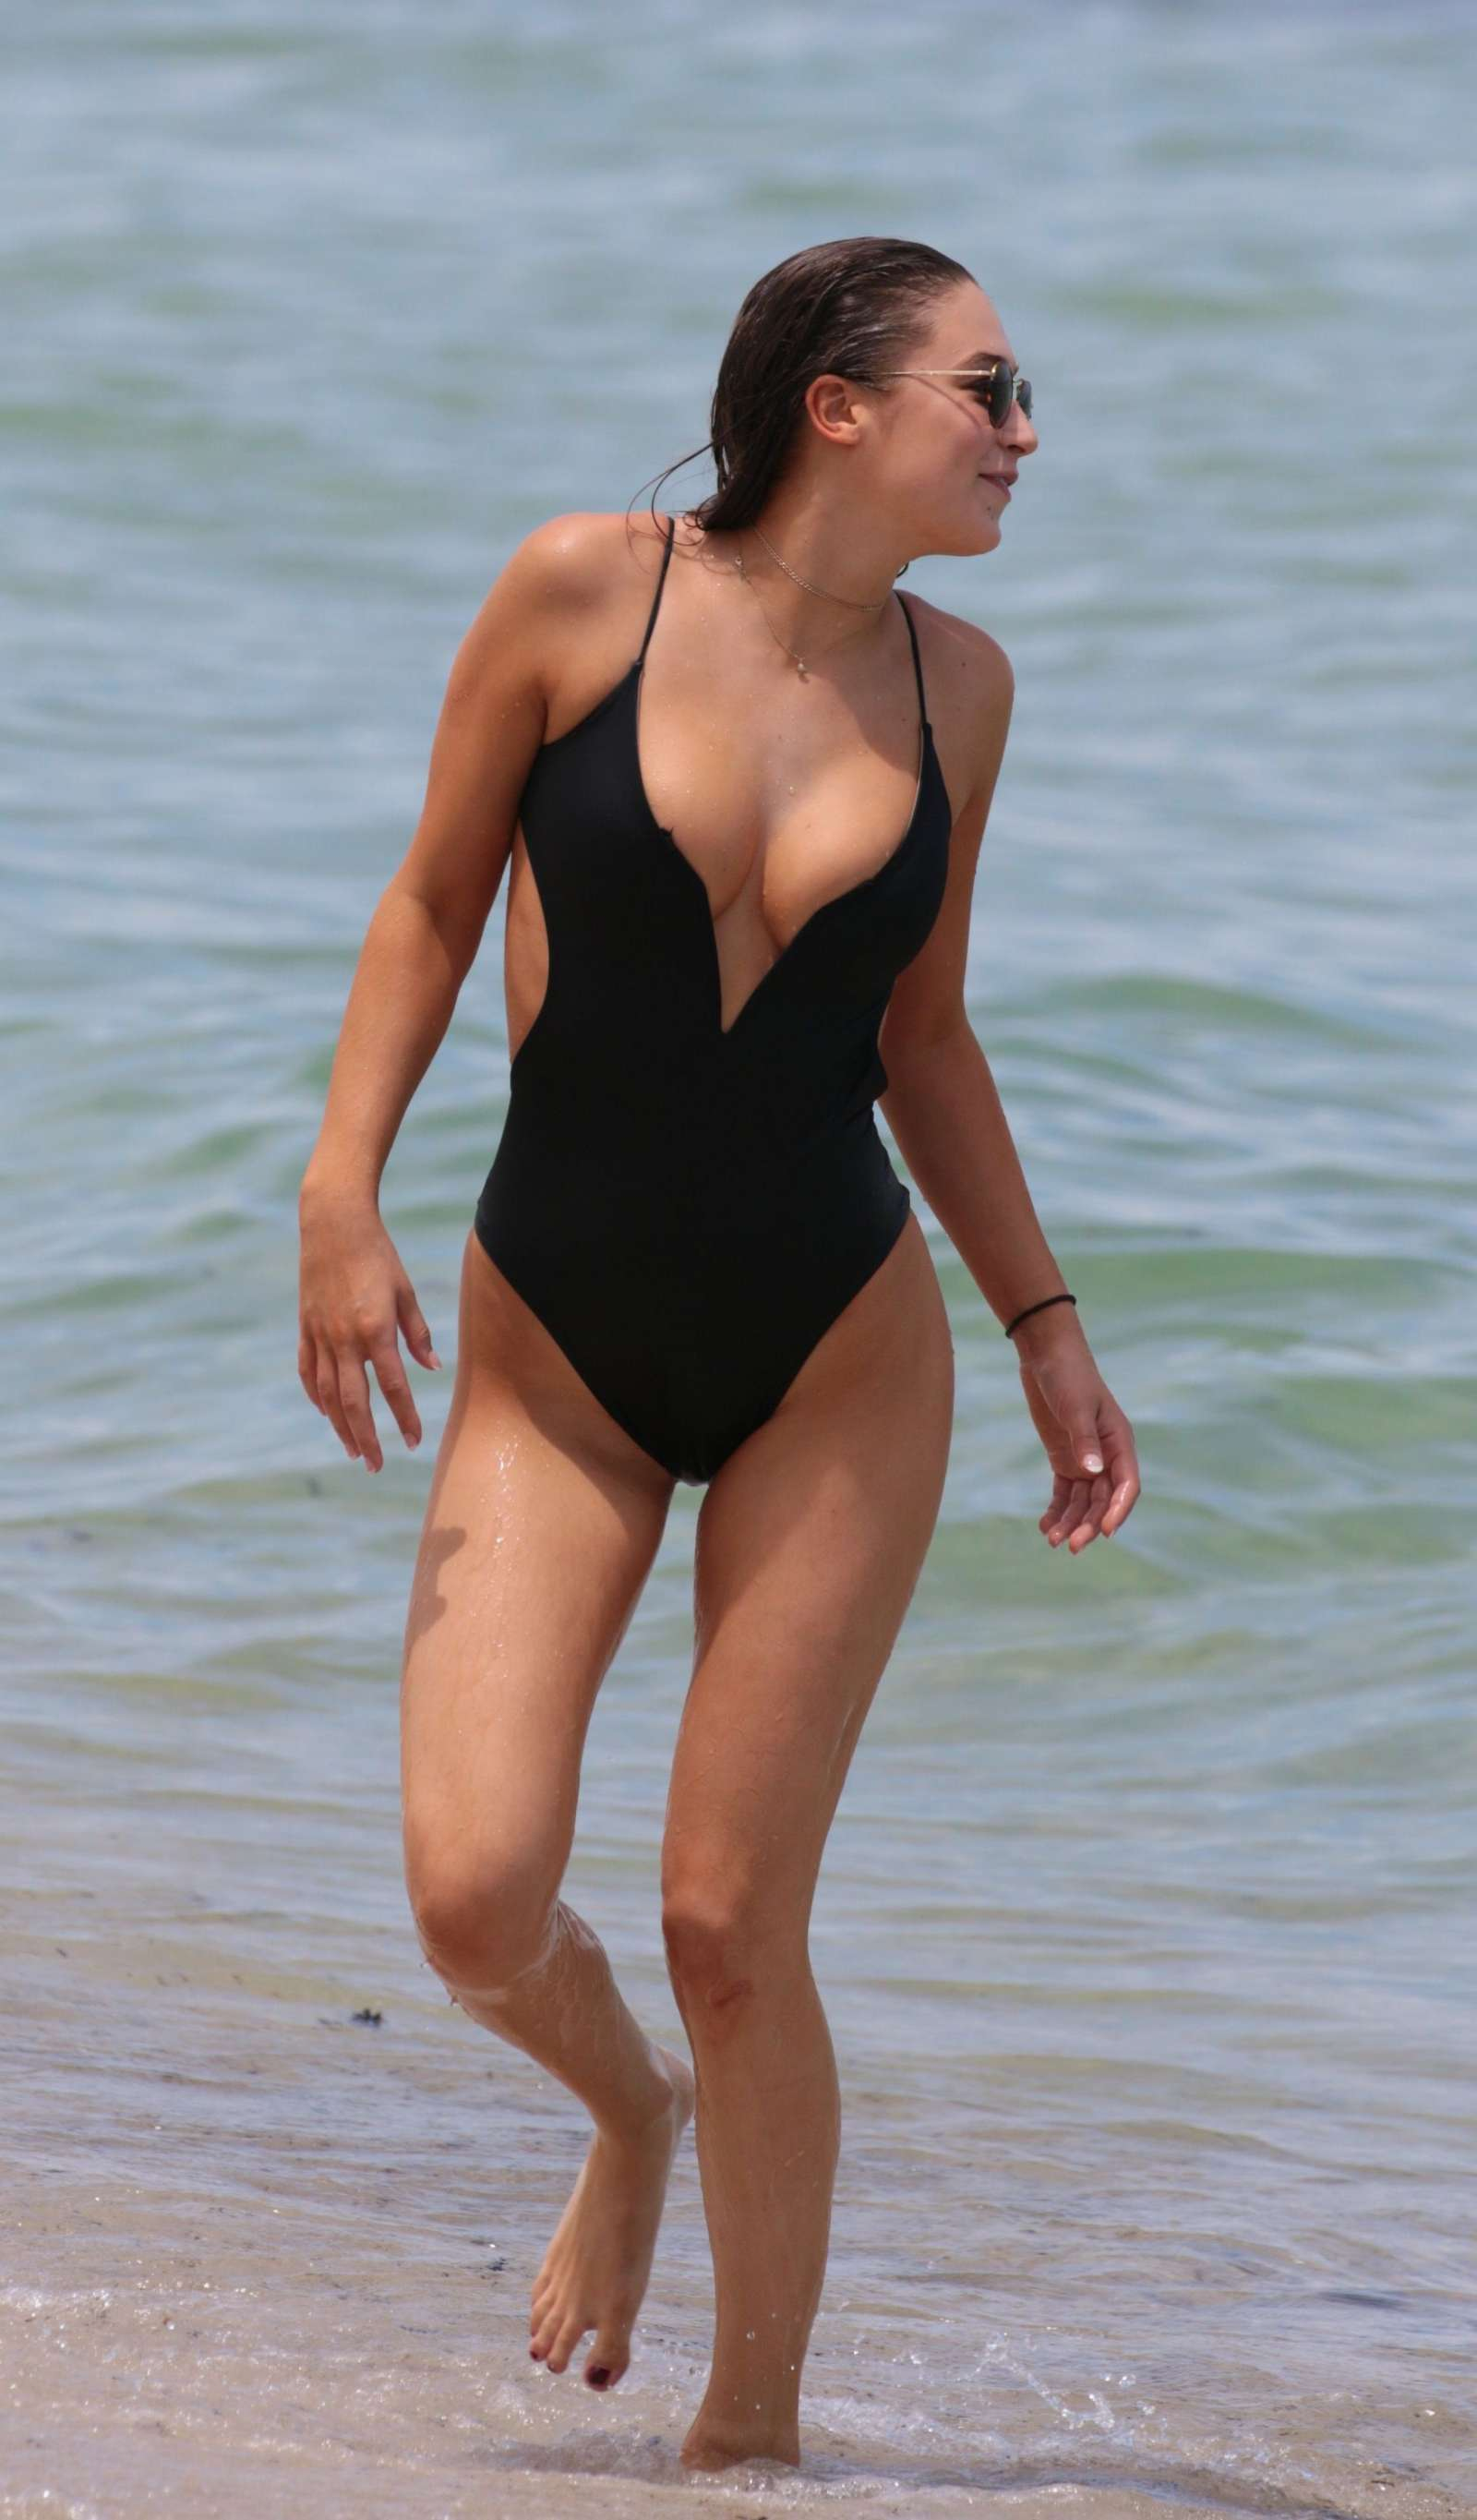 Elsie Hewitt In Black Swimsuit At The Beach In Miami